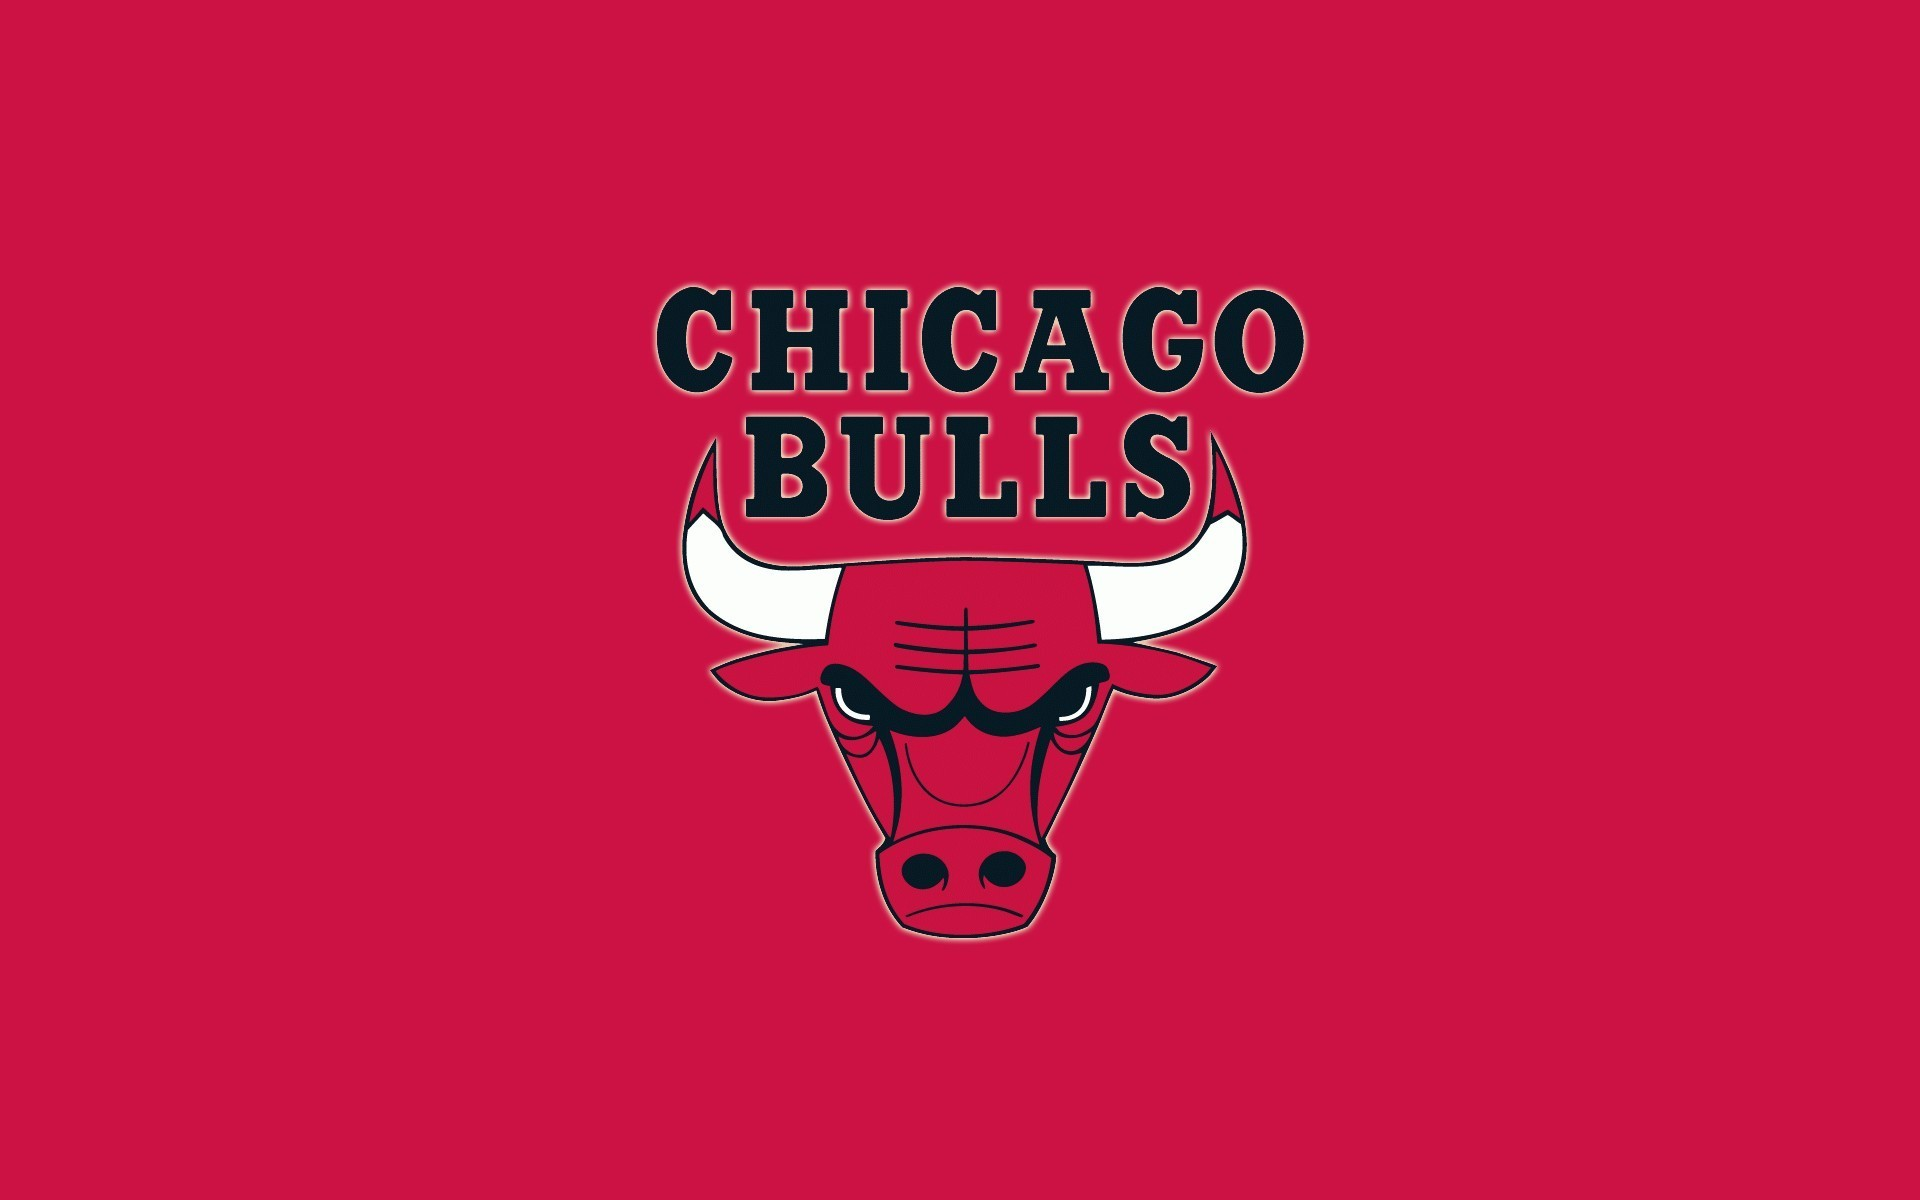 Chicago bulls wallpapers hd 81 background pictures 1920x1172 chicago bulls logo wallpapers hd pixelstalk ideas about bulls wallpaper on pinterest chicago bulls 1920x1172 thecheapjerseys Gallery